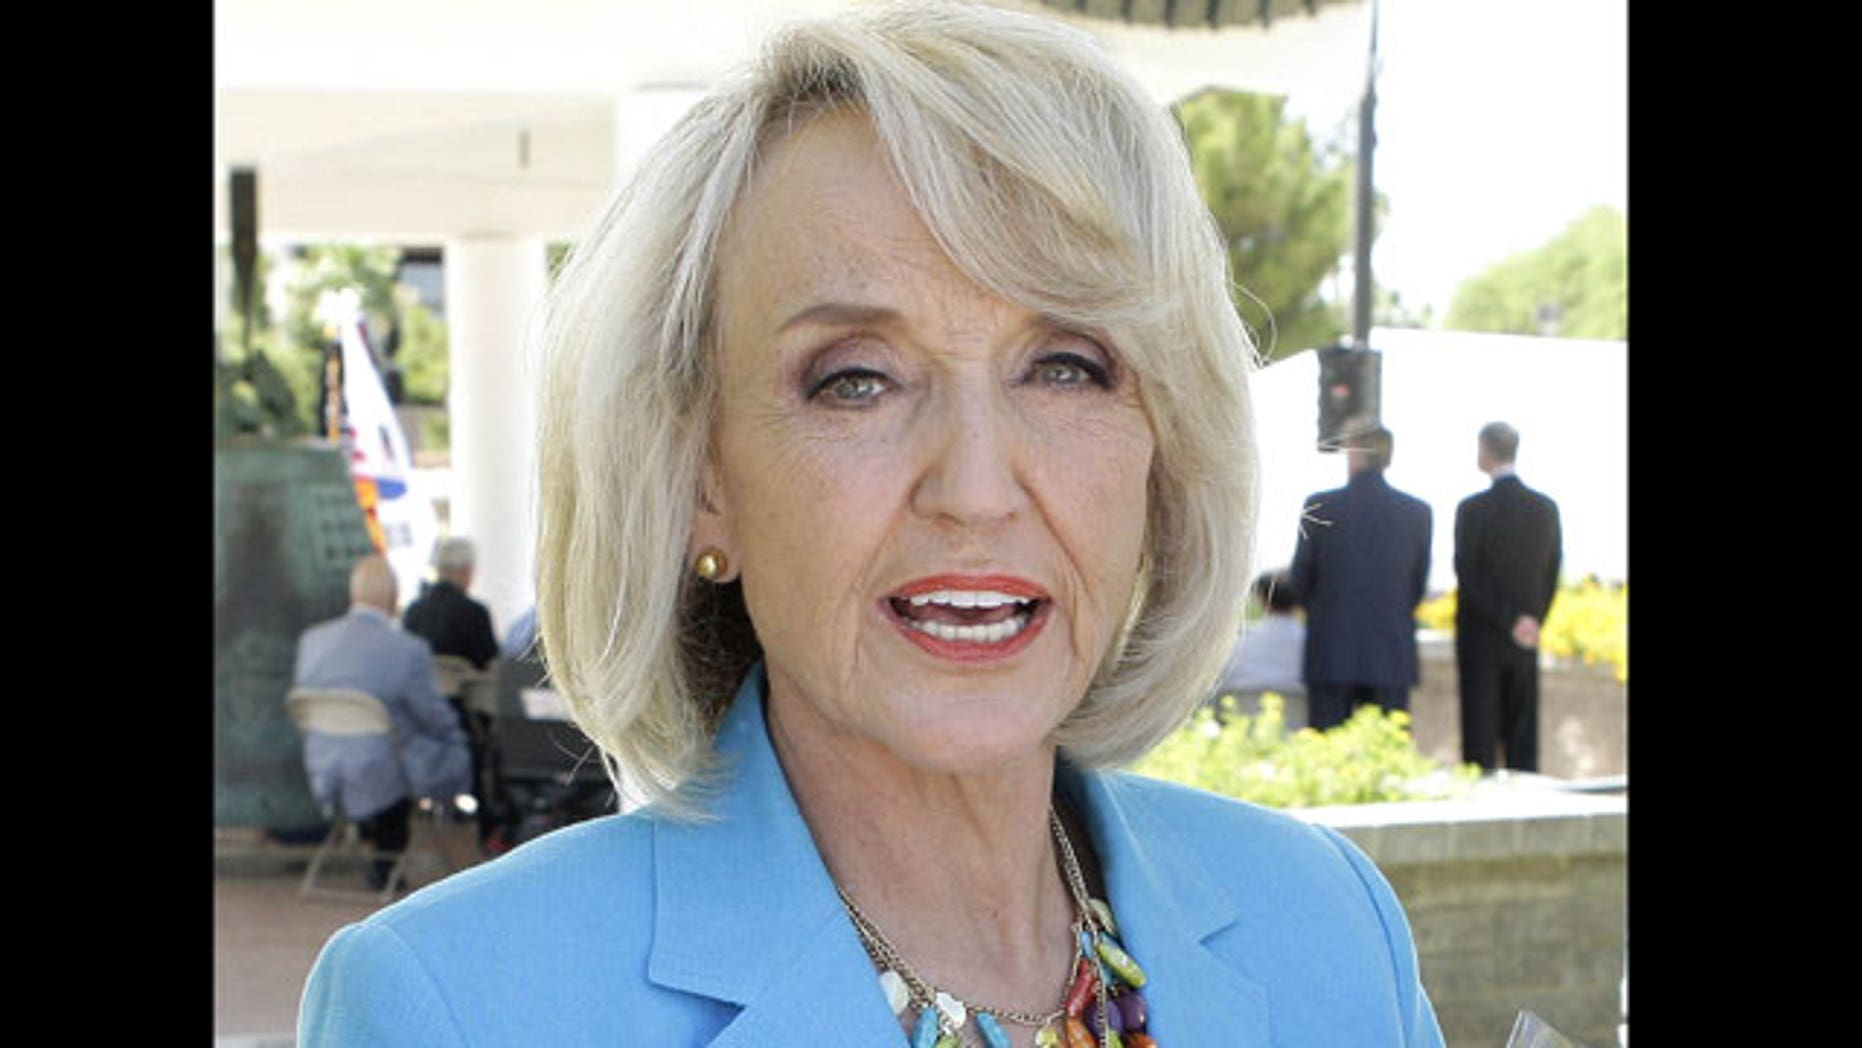 June 25: Arizona Gov. Jan Brewer attends a ceremony commemorating the 60th Anniversary of the start of the Korean War in Phoenix.